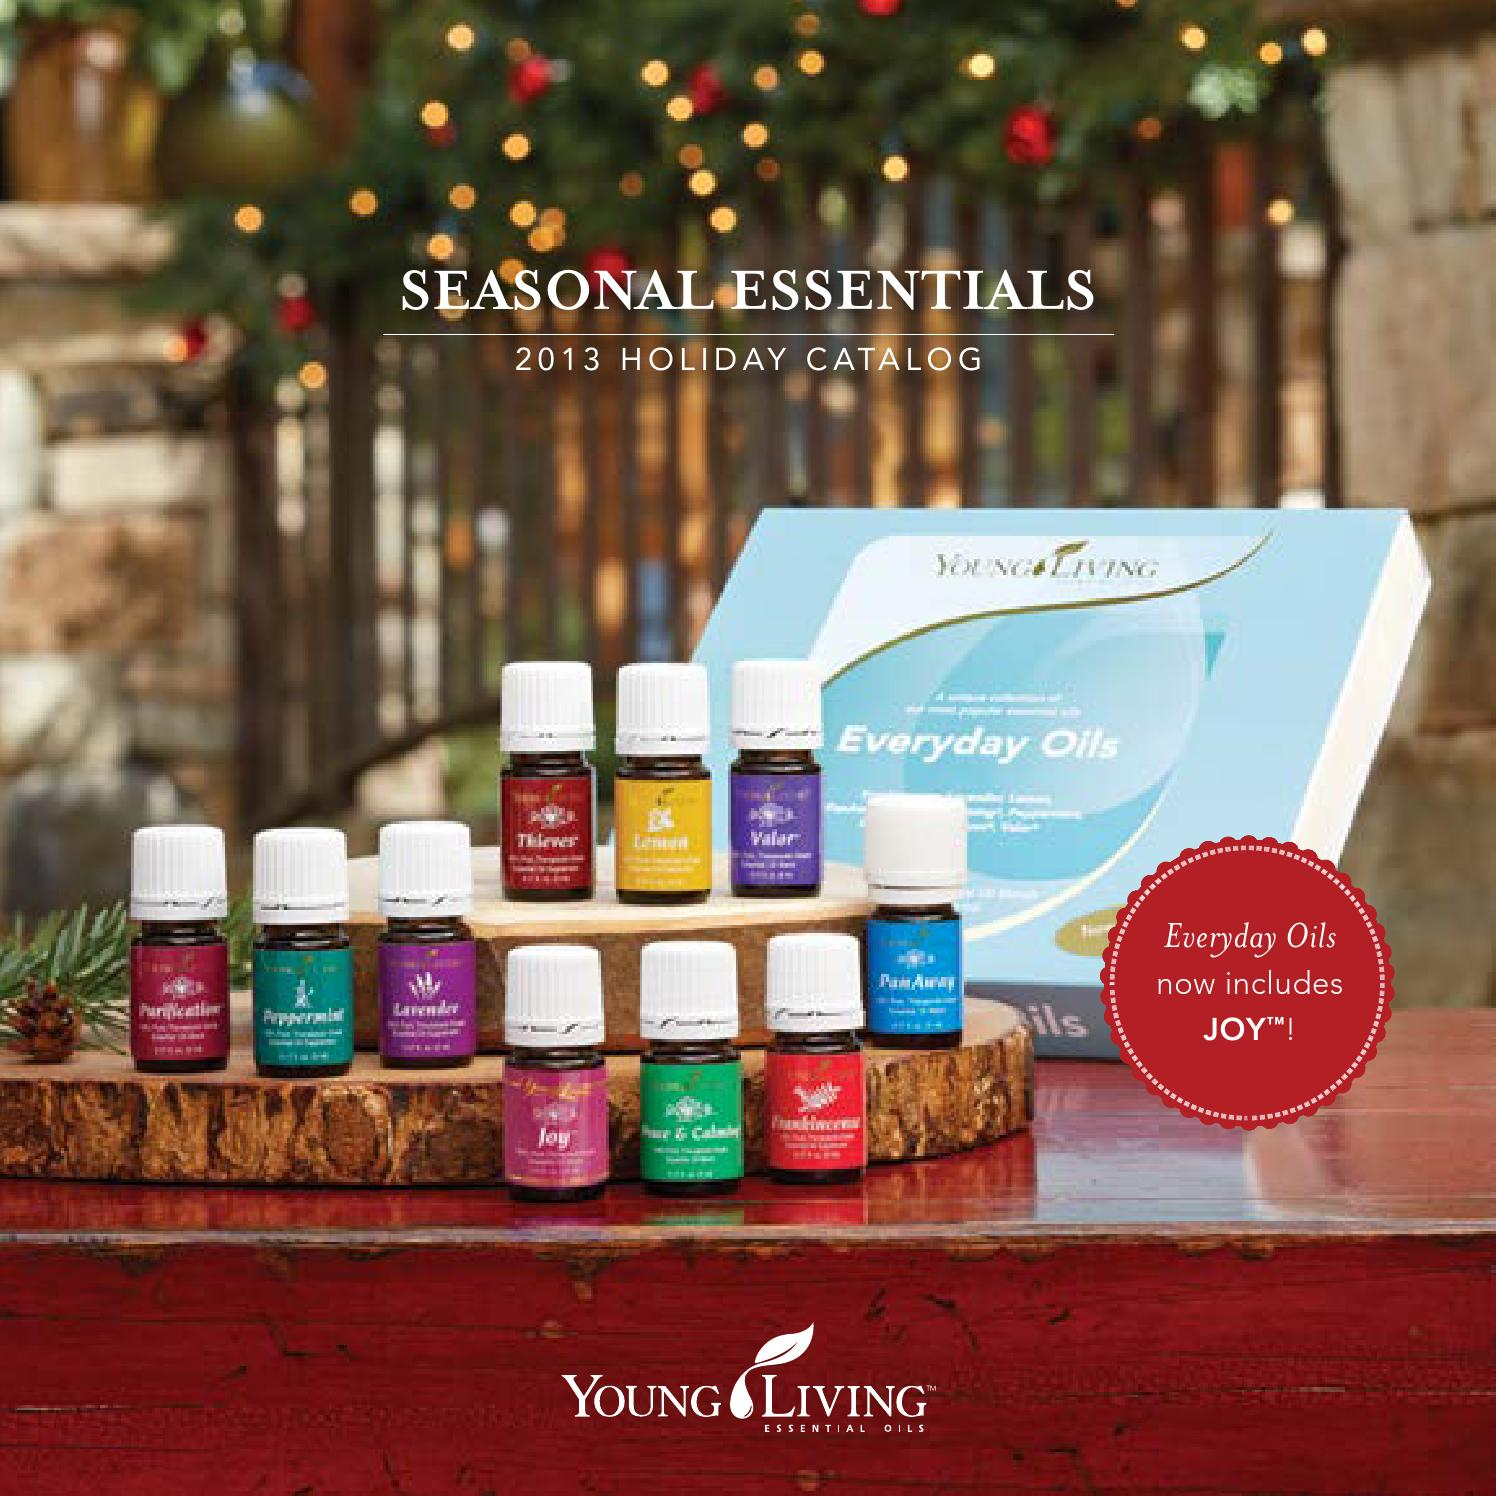 Home Goods Catalog Companies: 2013 Holiday Catalog US By Young Living Essential Oils